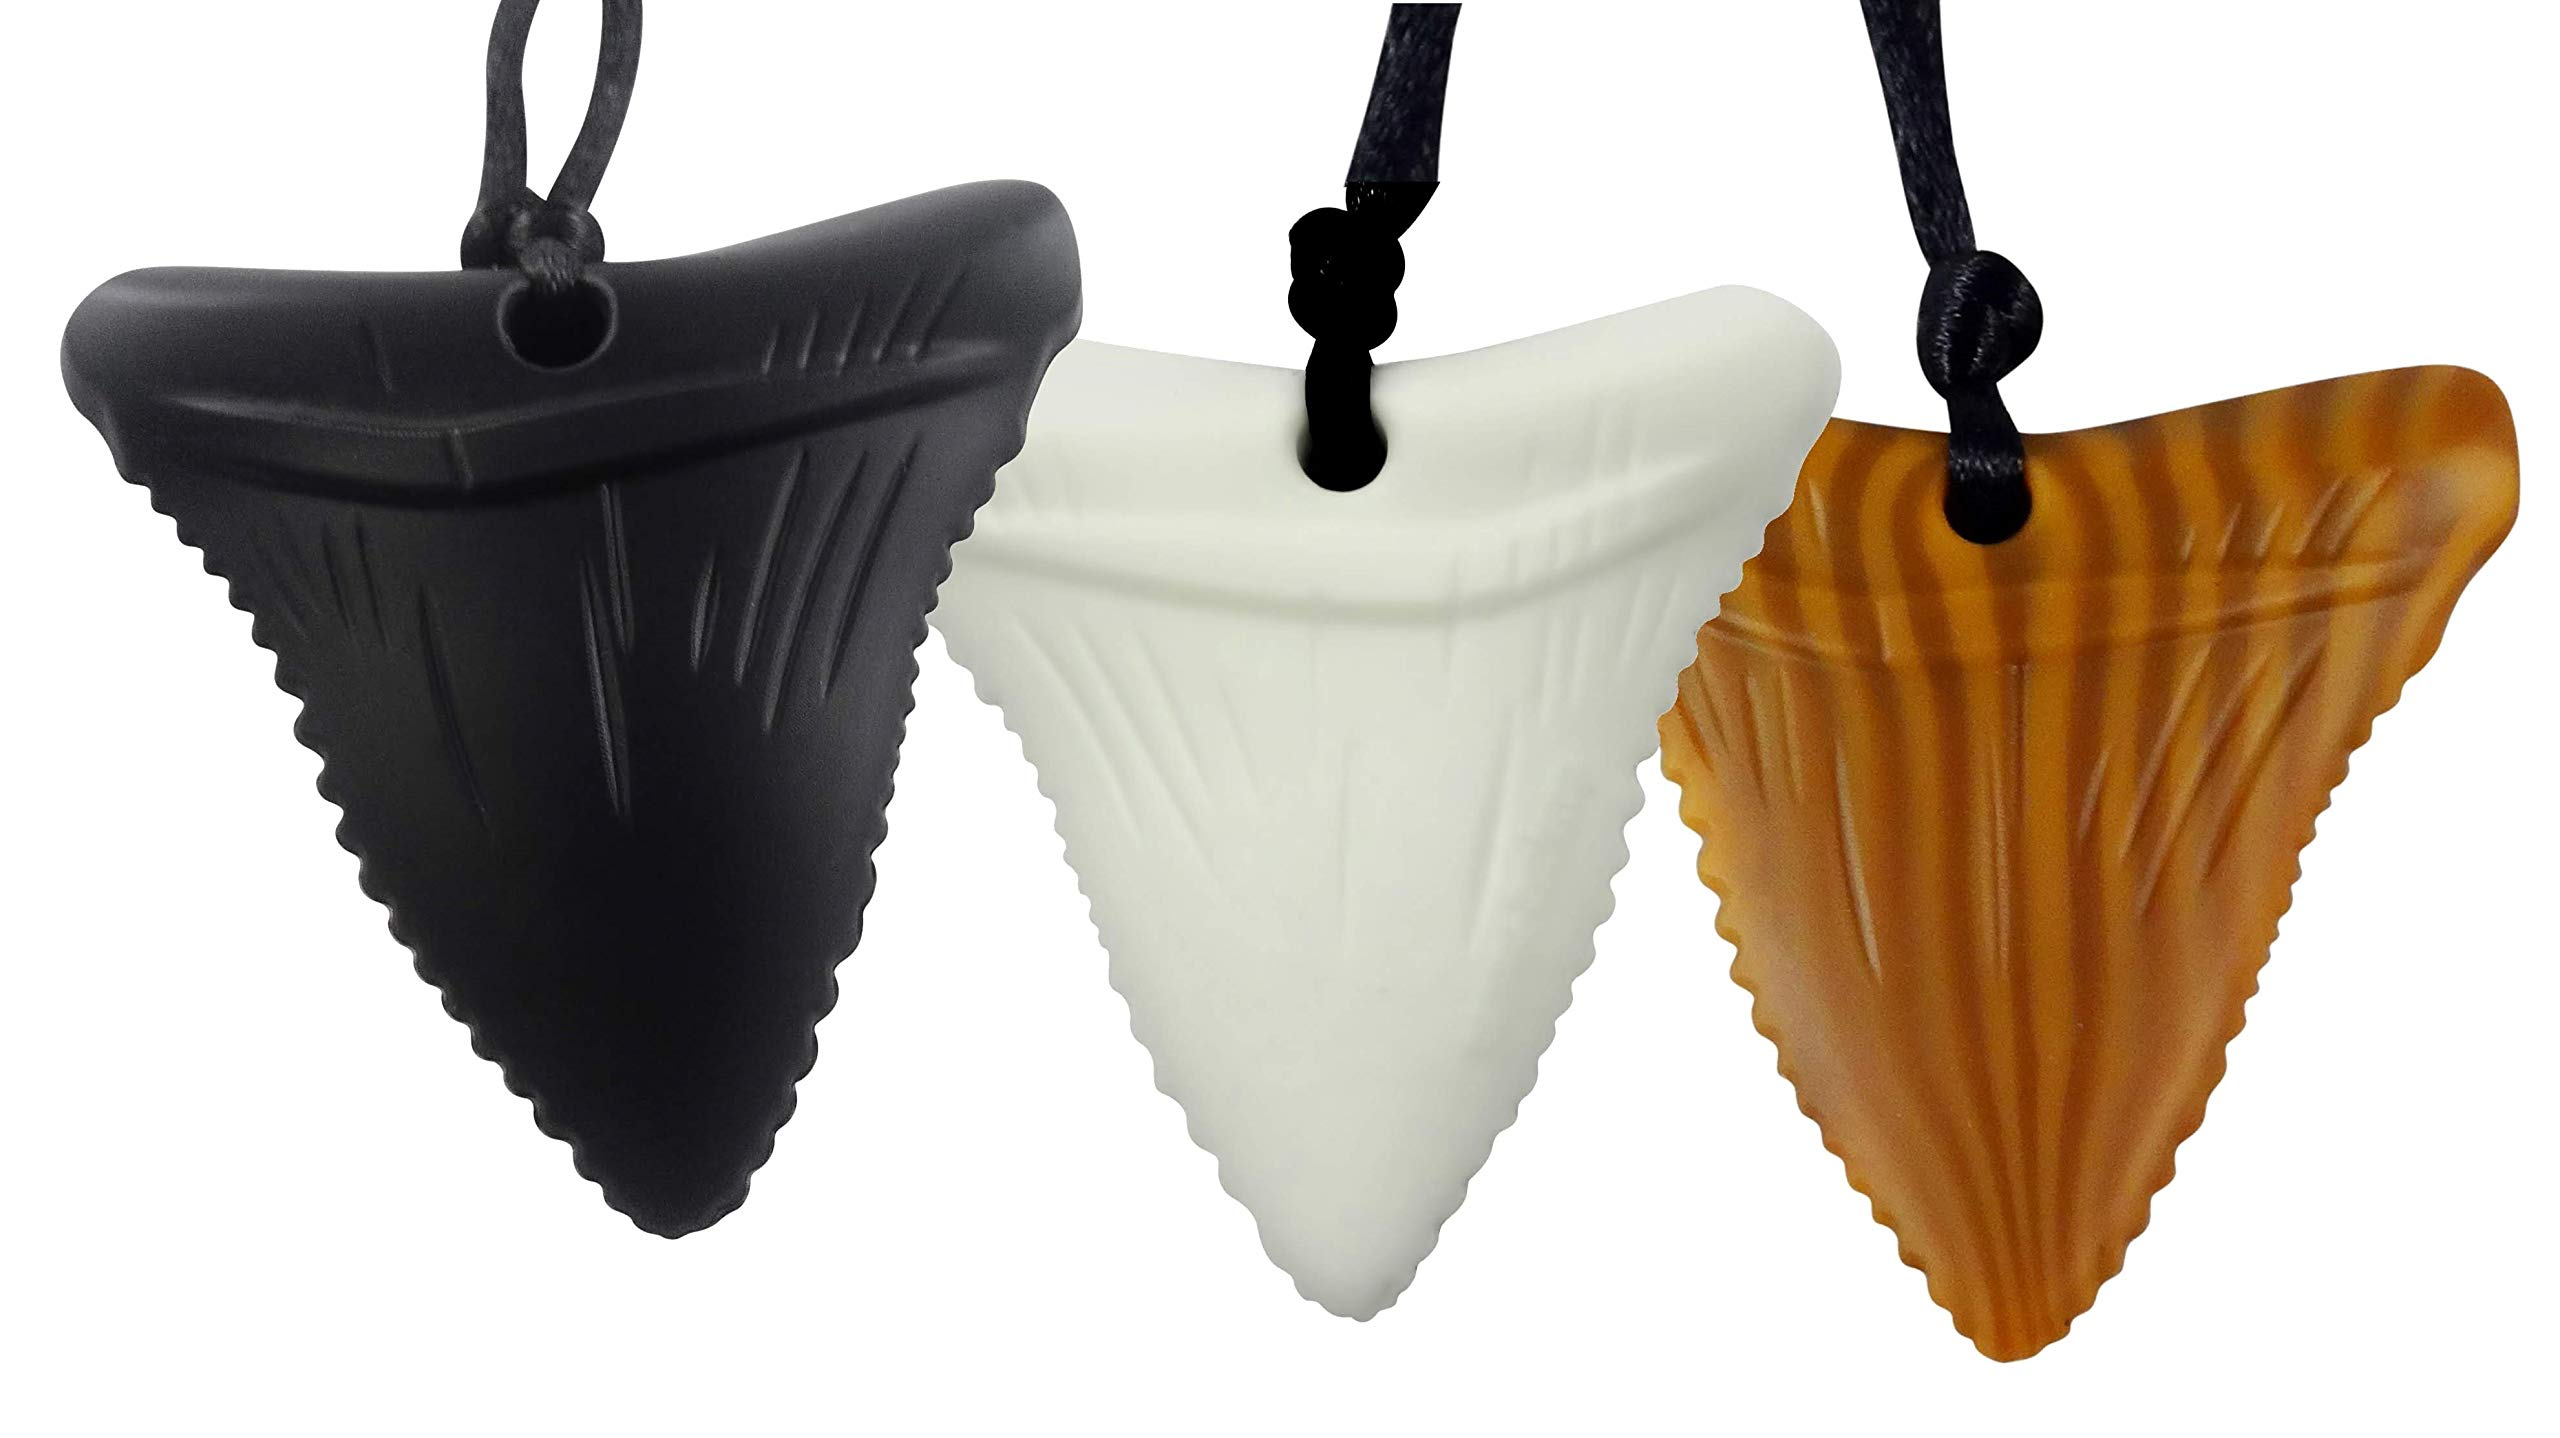 Mommy's Touch 3-Pack Shark Tooth Silicone Chew - Gender Neutral Teething Necklace for Children - Oral Sensory Chewy Teether Necklaces for Autistic Chewers - Chewelry for Boys and Girls by Mommy's Touch